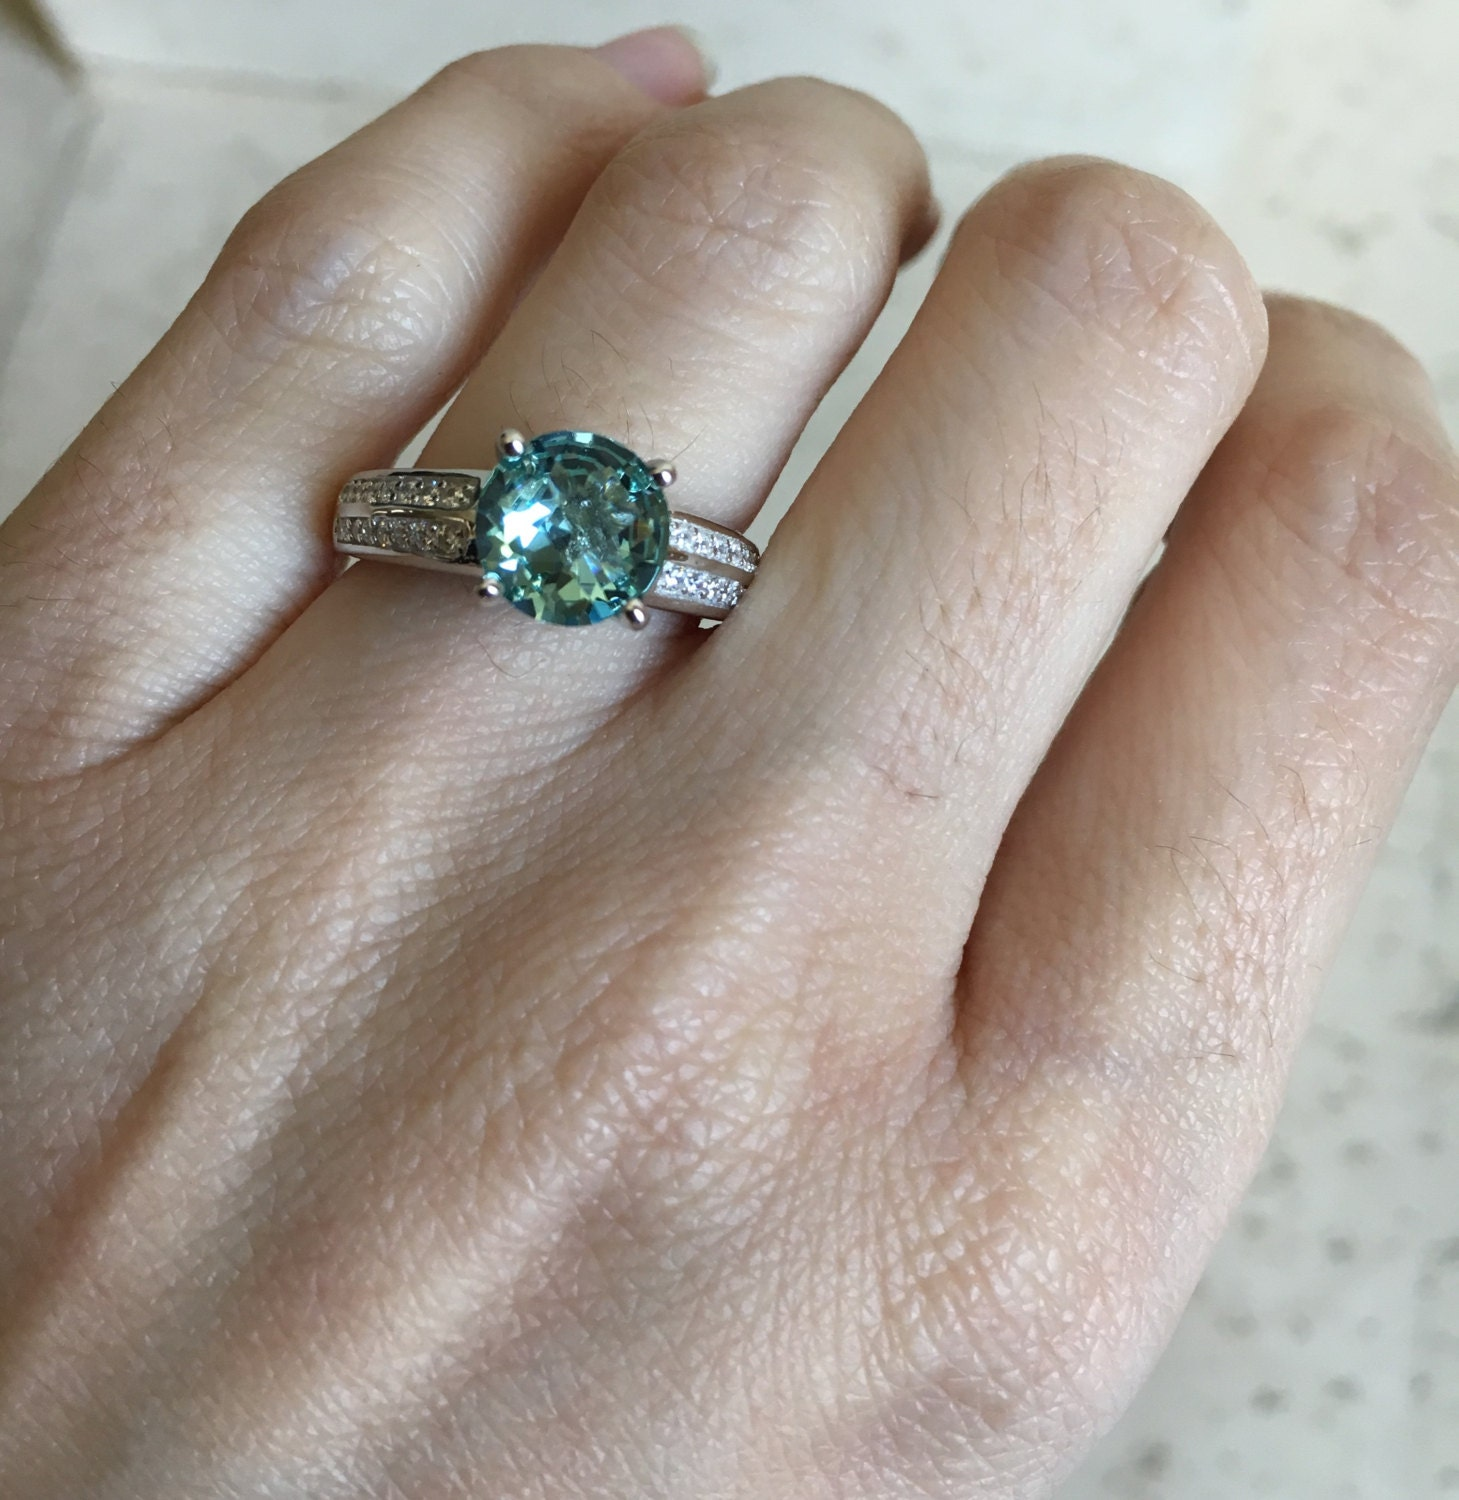 root custommade gold article quartz for white cut colored ring rings a best in permission the emeralds tree international emerald your green engagement gemstones mm with used branch